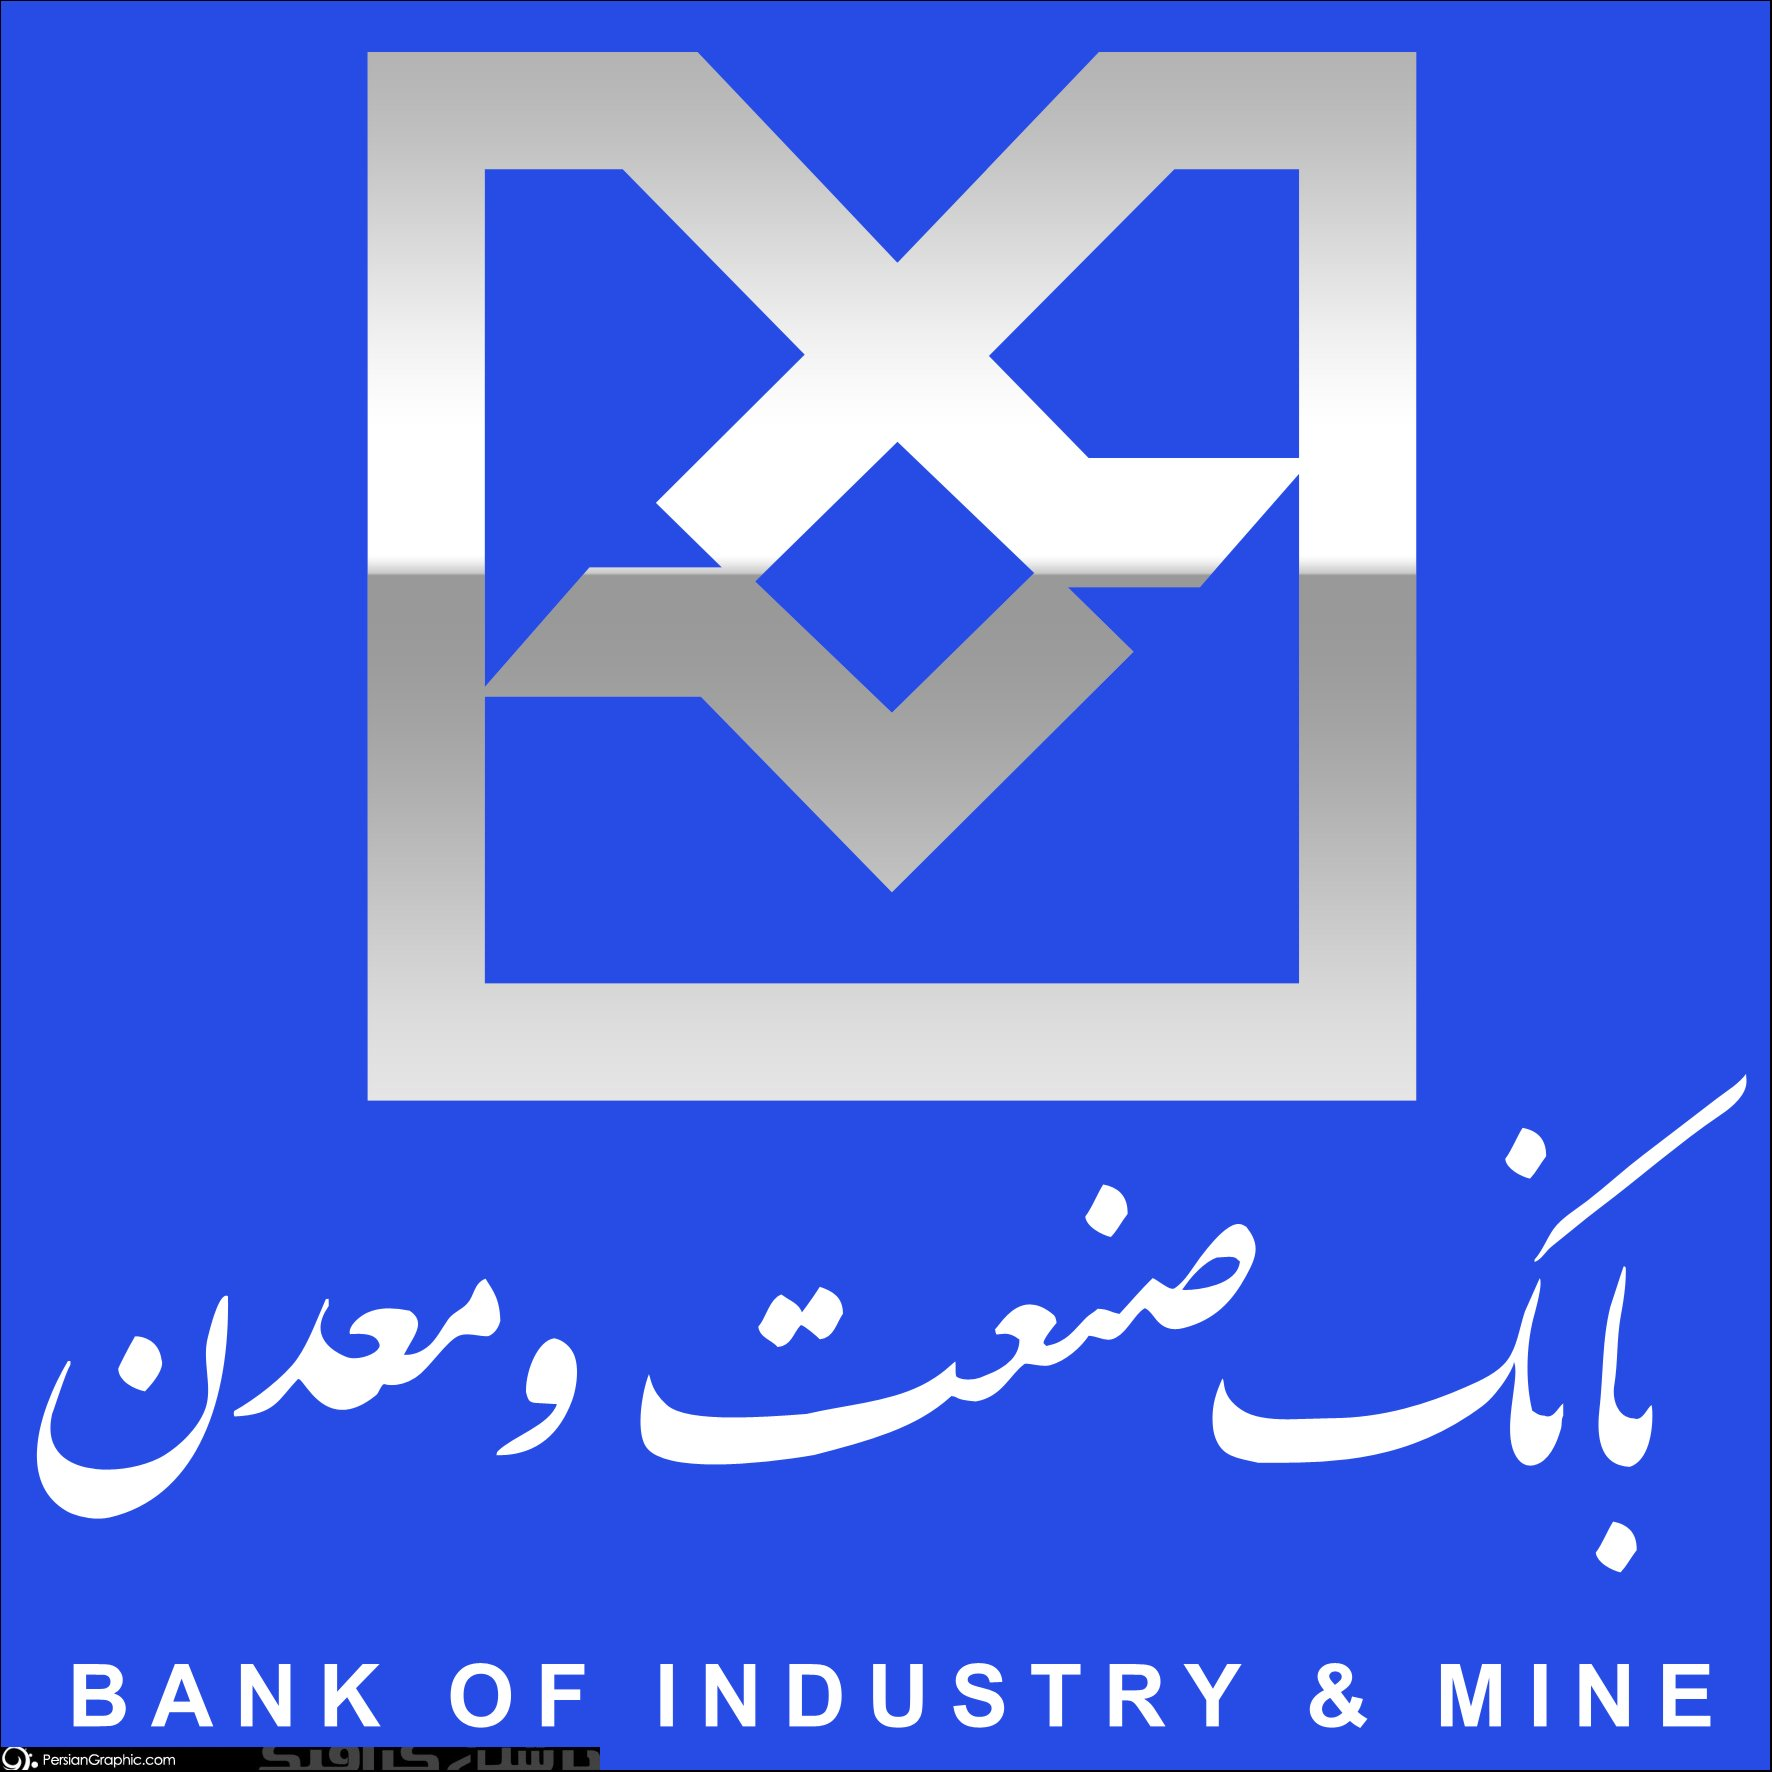 Appreciation of a large industrial unit from the Industry and Mine Bank